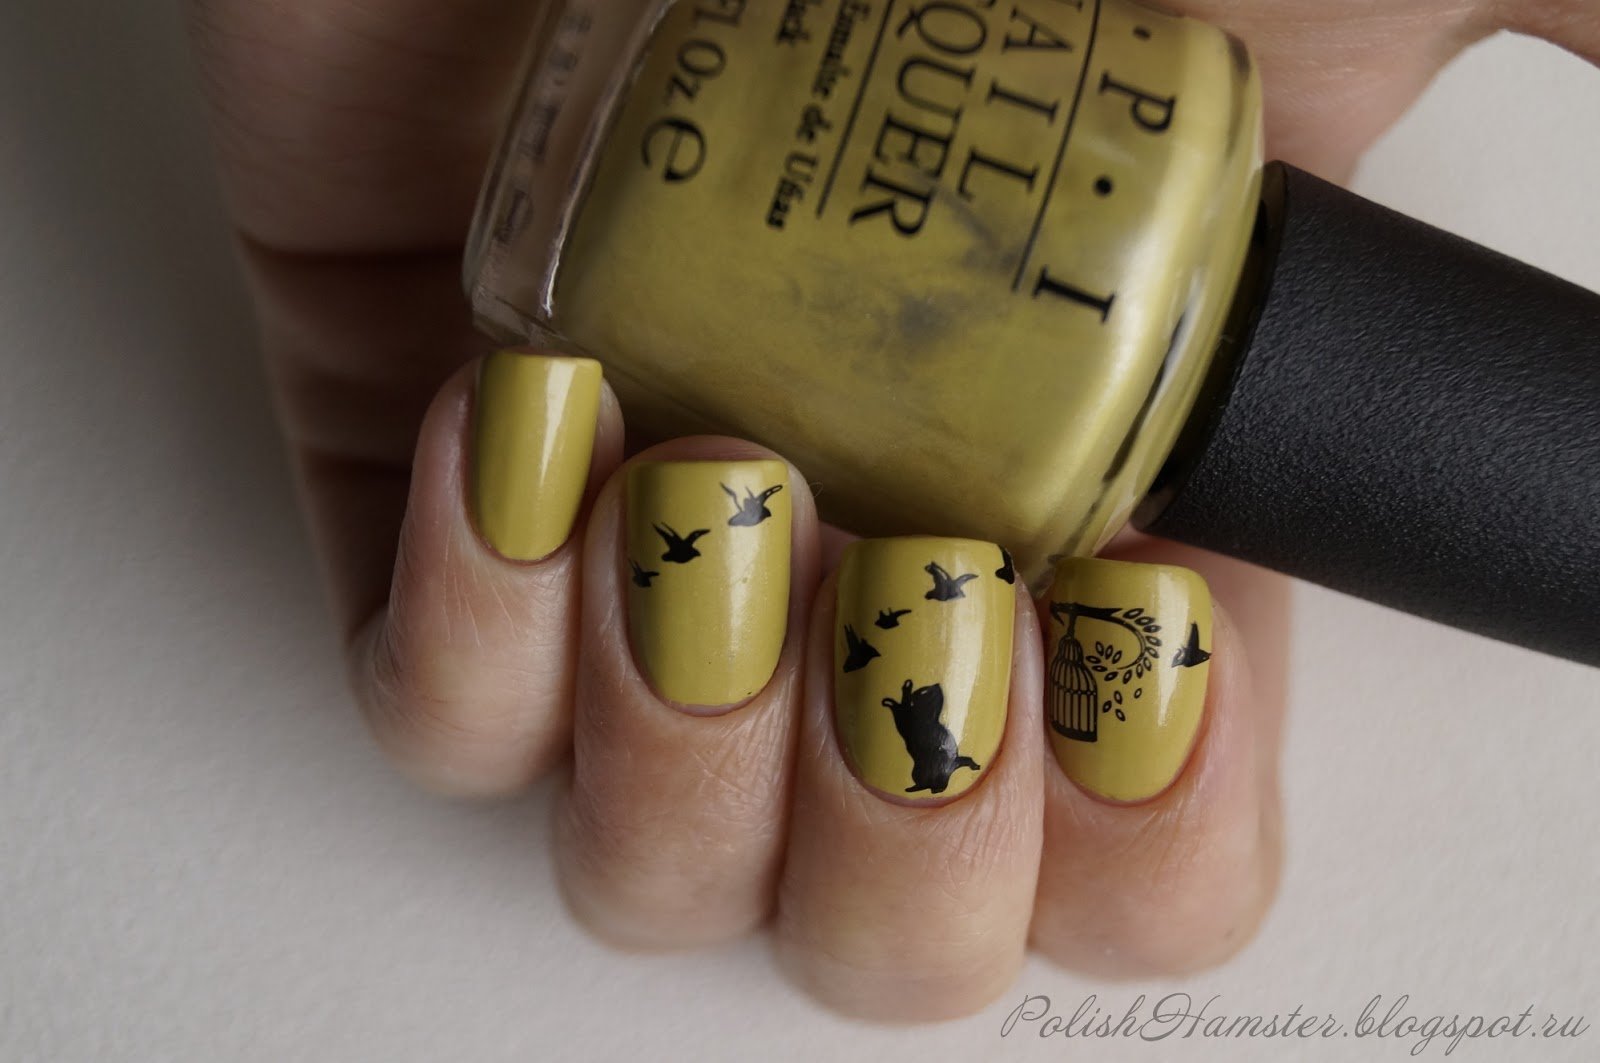 OPI Don't talk Bach to me + стемпинг MoYou London Kitty Plate Collection 11